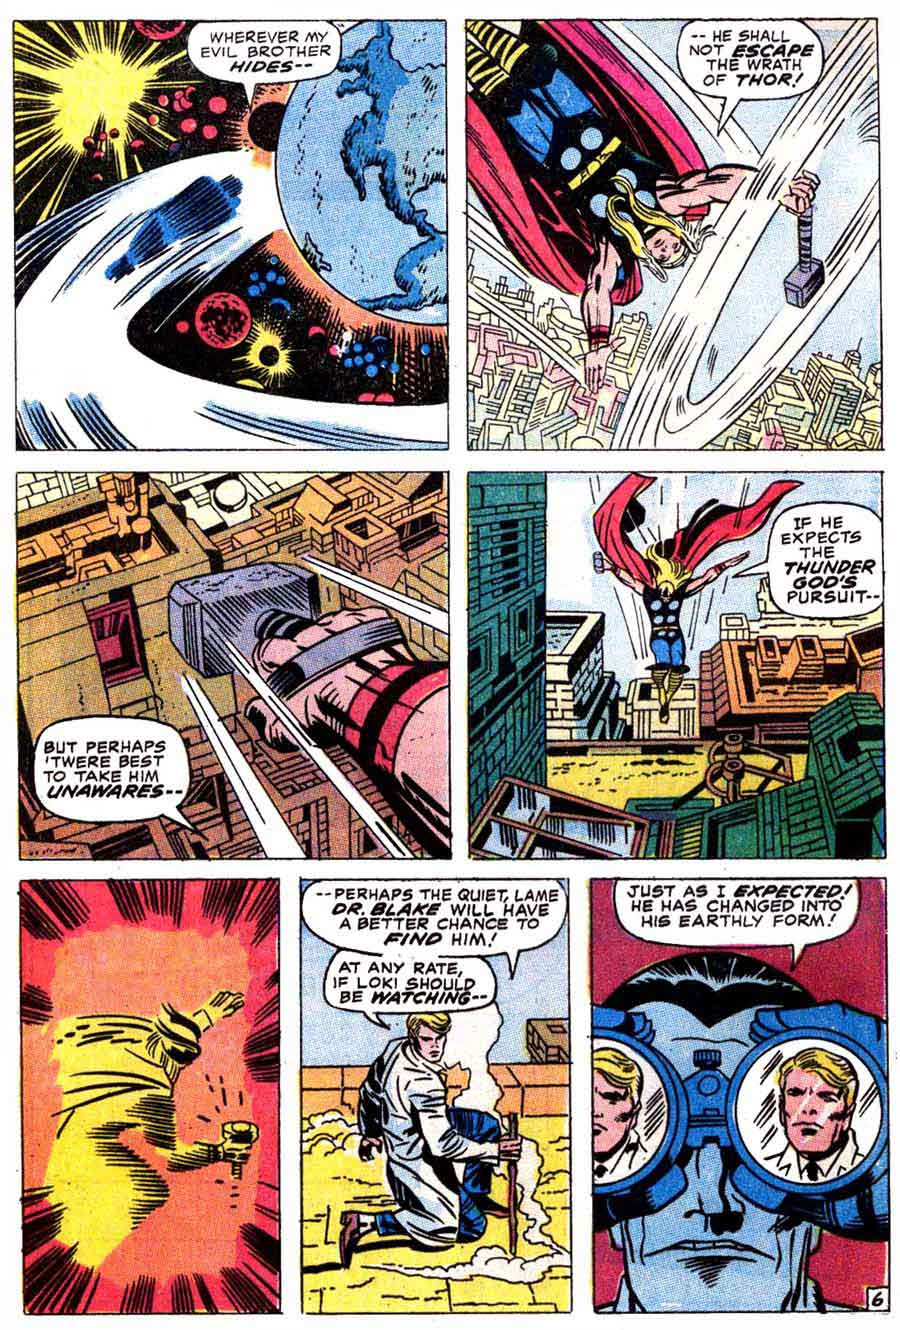 Thor v1 #179 marvel comic book page art by Jack Kirby